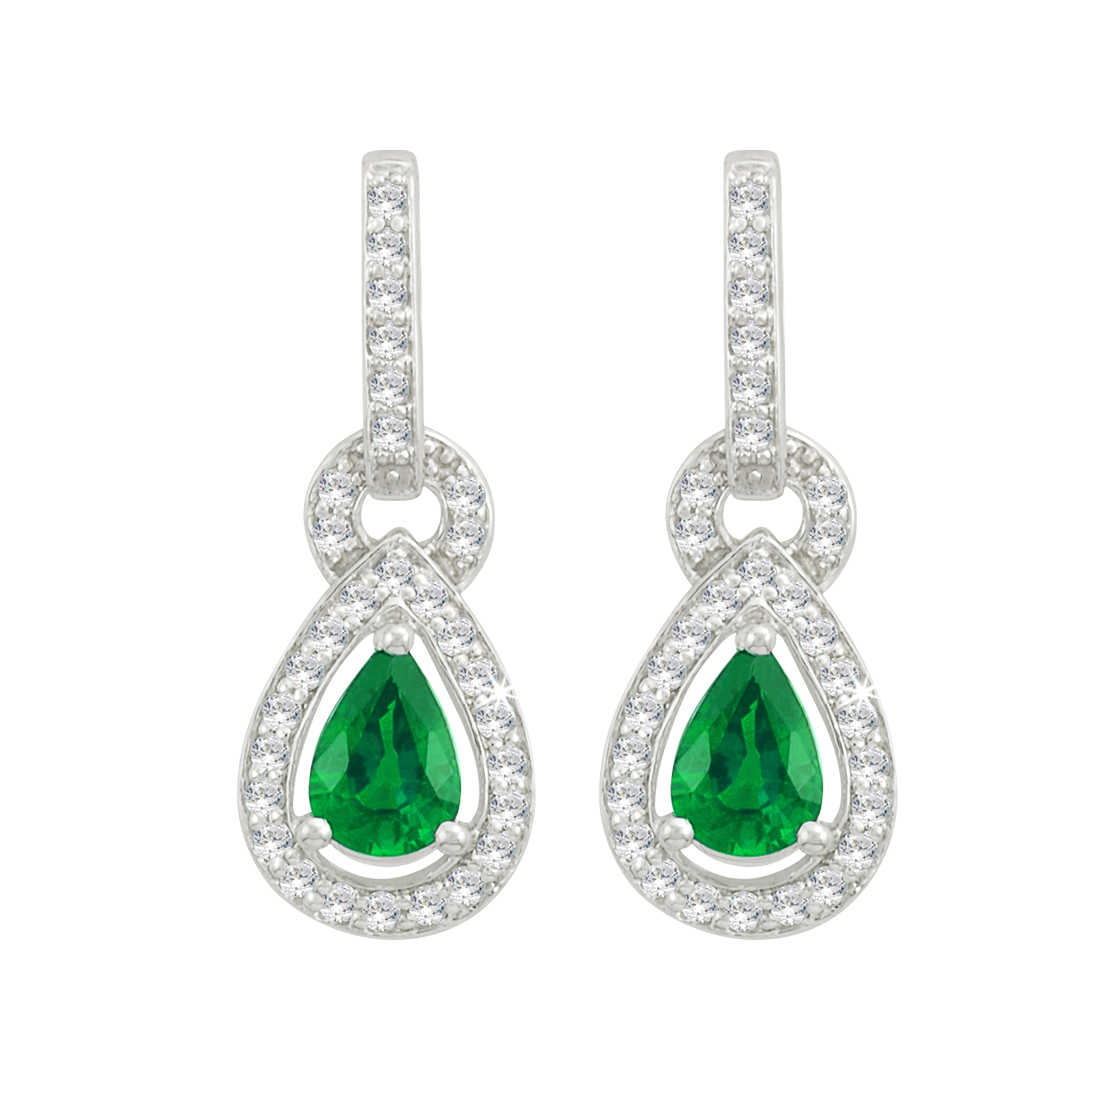 Diamond and Emerald Drop Earrings